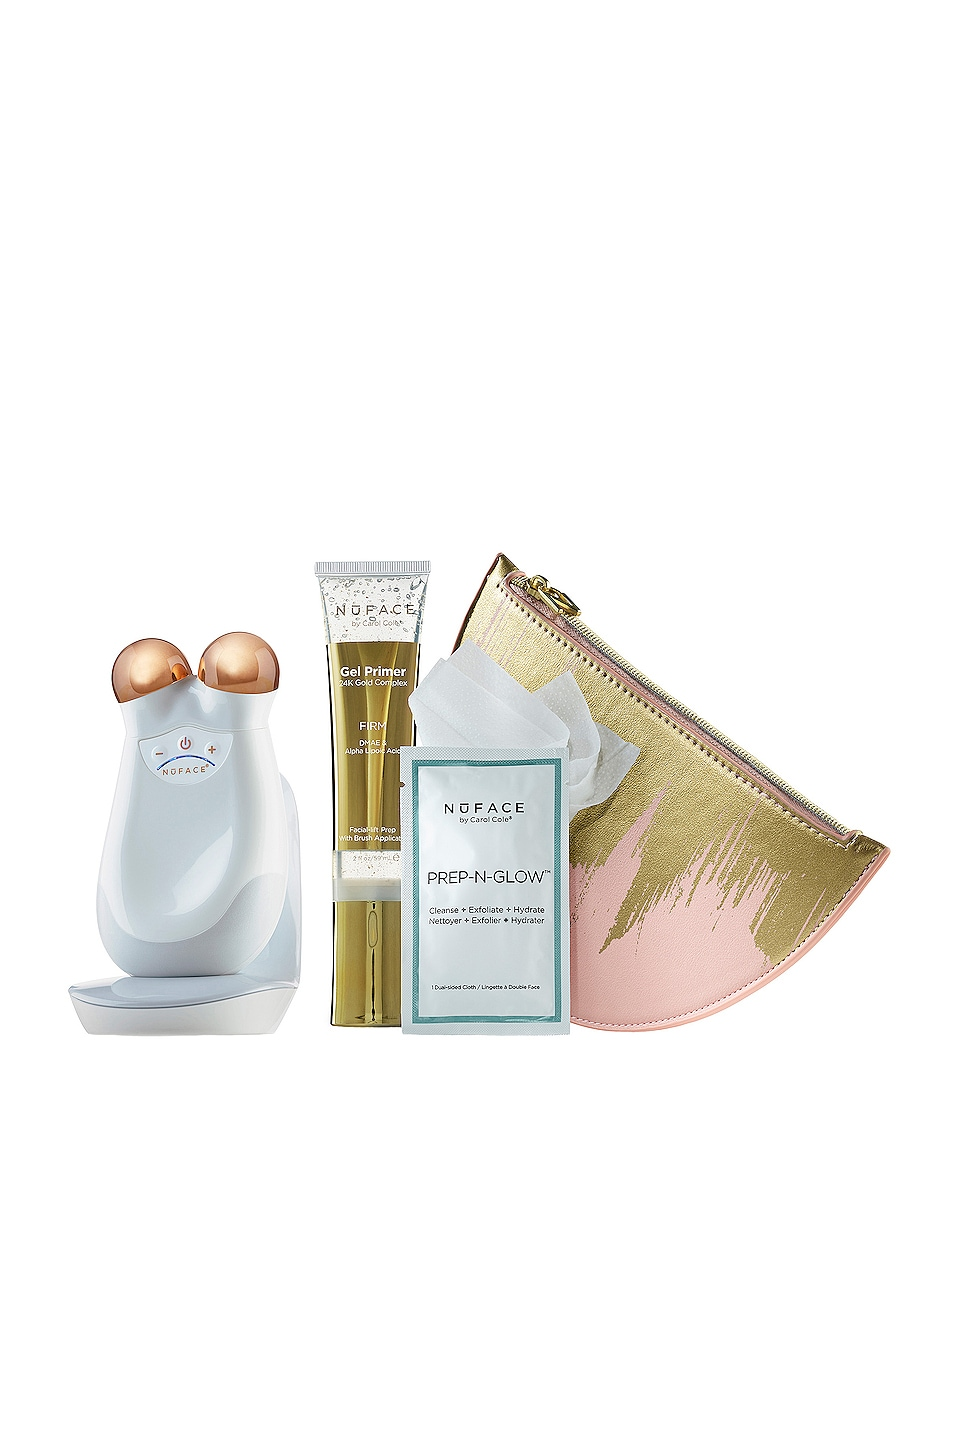 NUFACE Gold Mini Express Skin Toning Collection - Pink